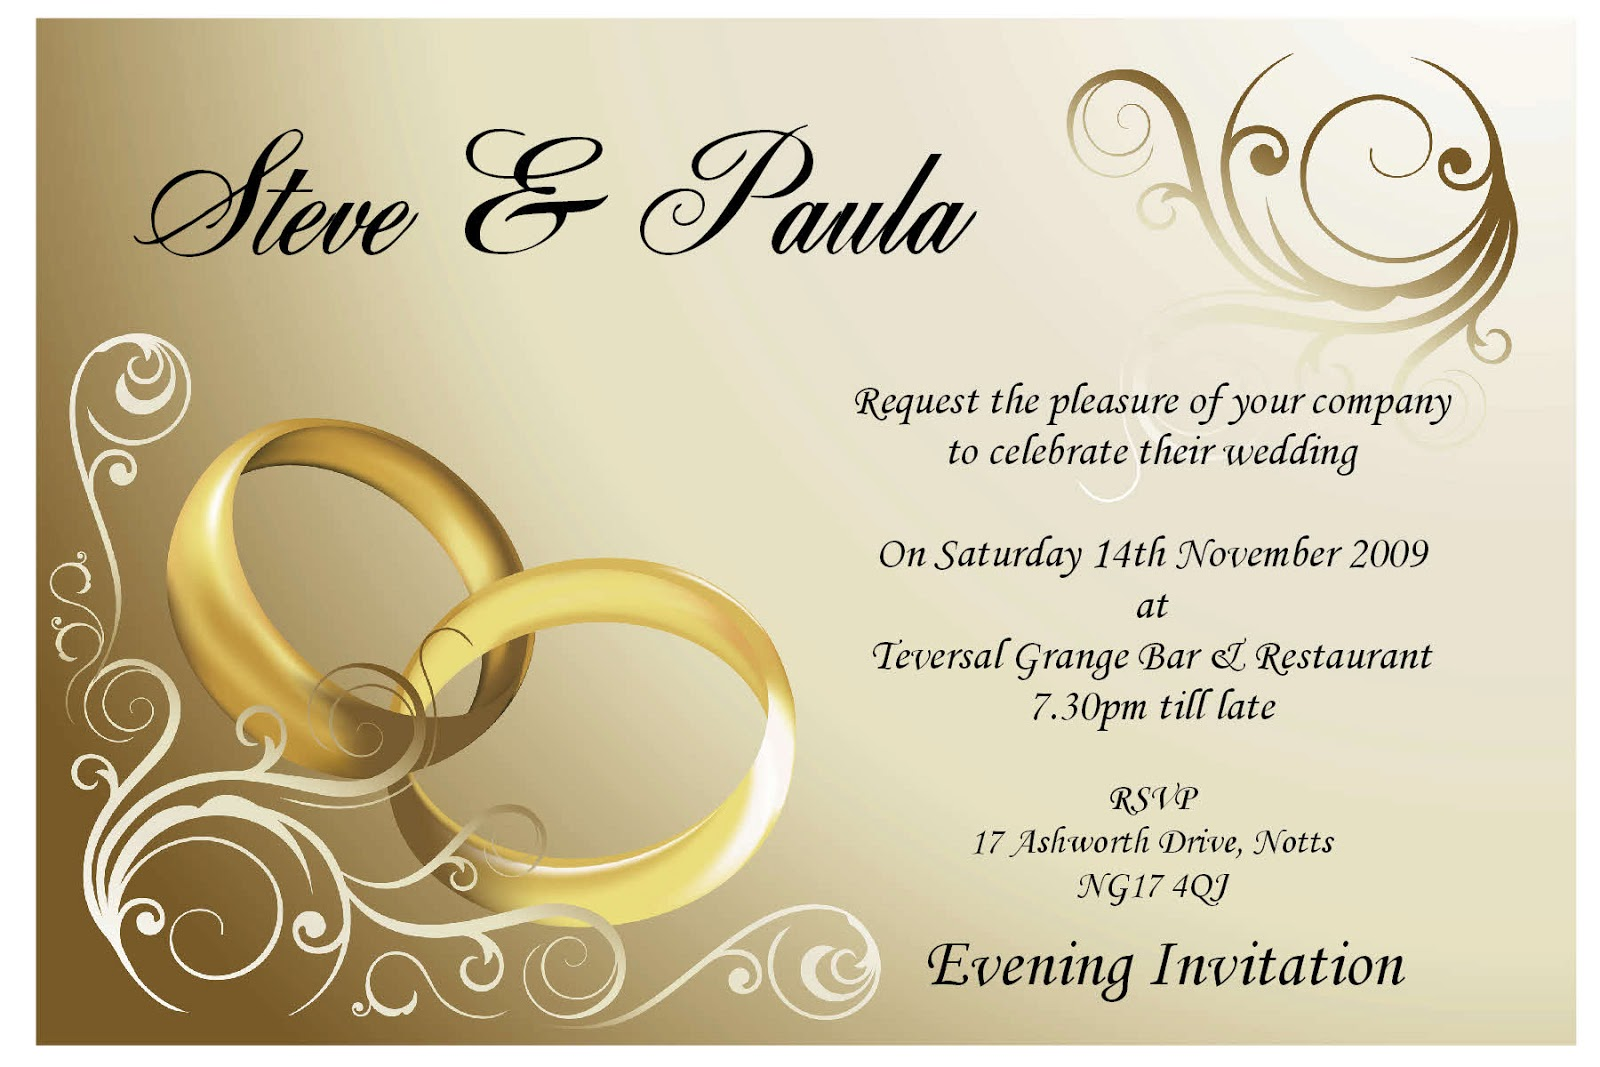 steve and paula wedding invitation template card